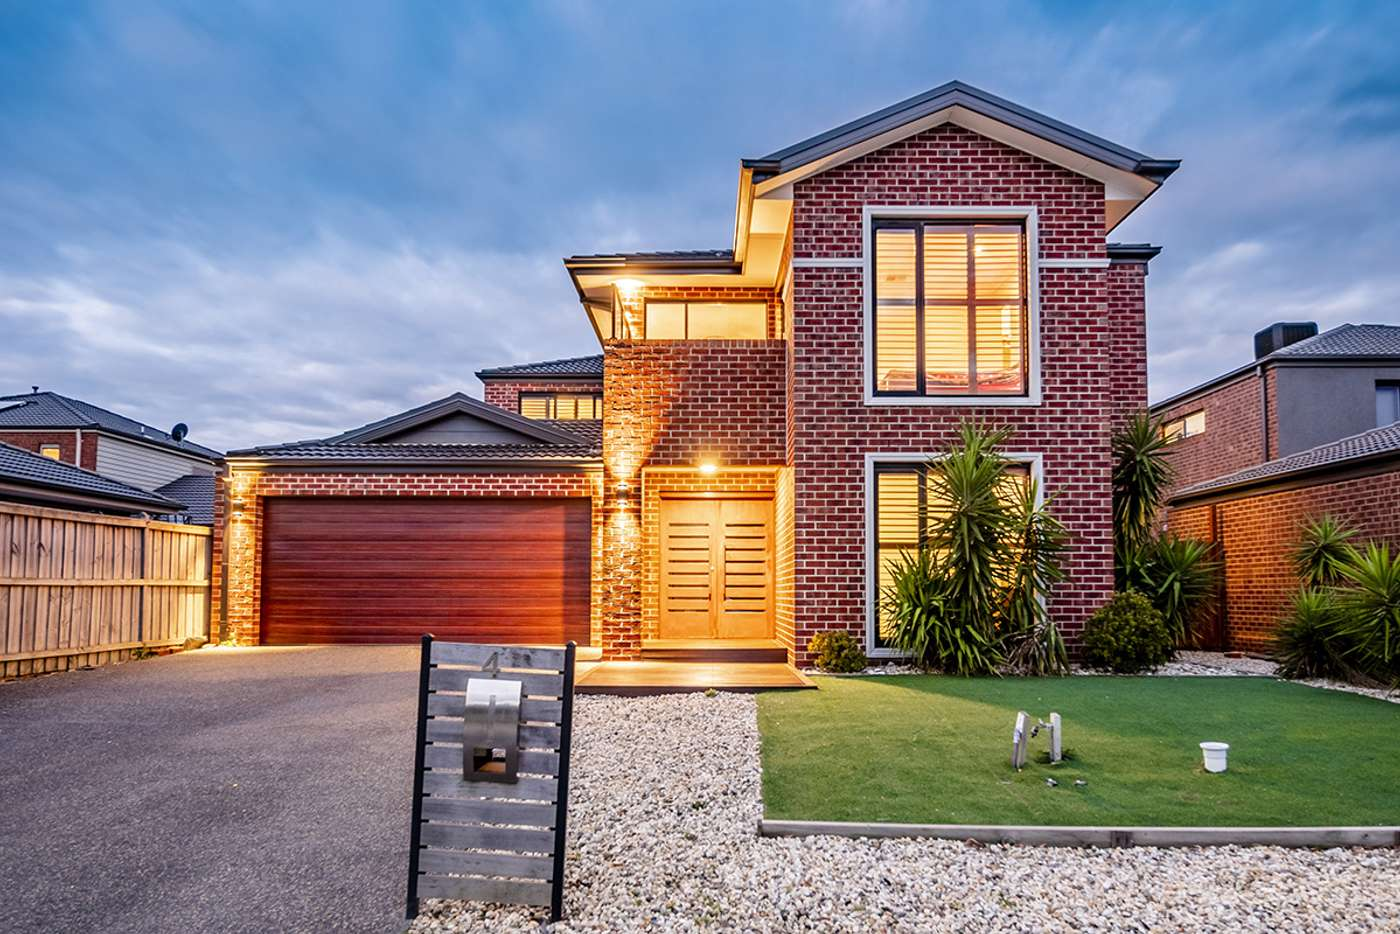 Main view of Homely house listing, 4 Sunnybrook Way, Lyndhurst VIC 3975